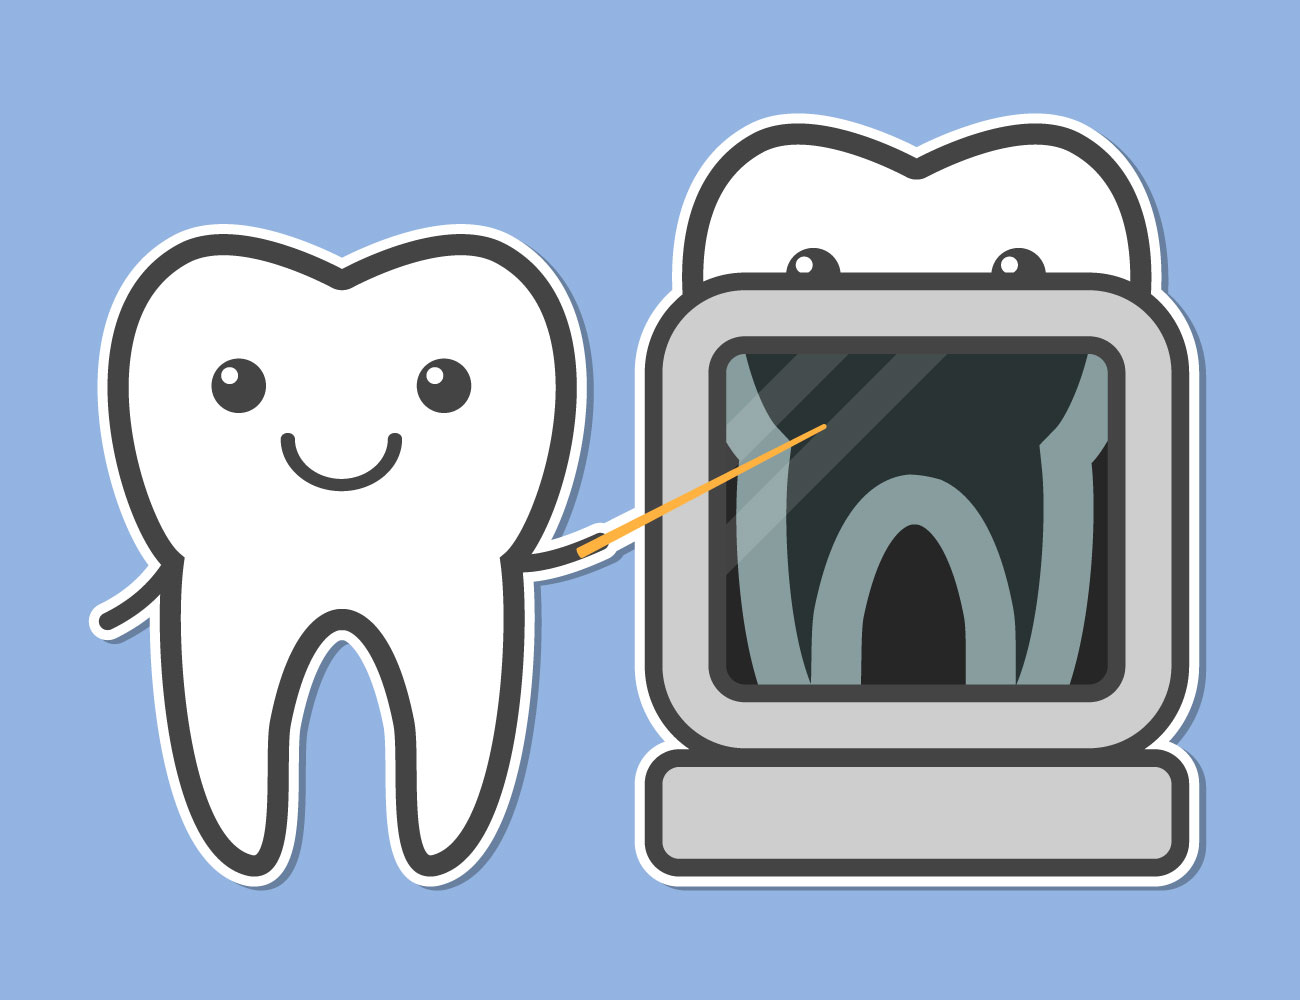 Dentist clipart tooth xray. How safe are dental